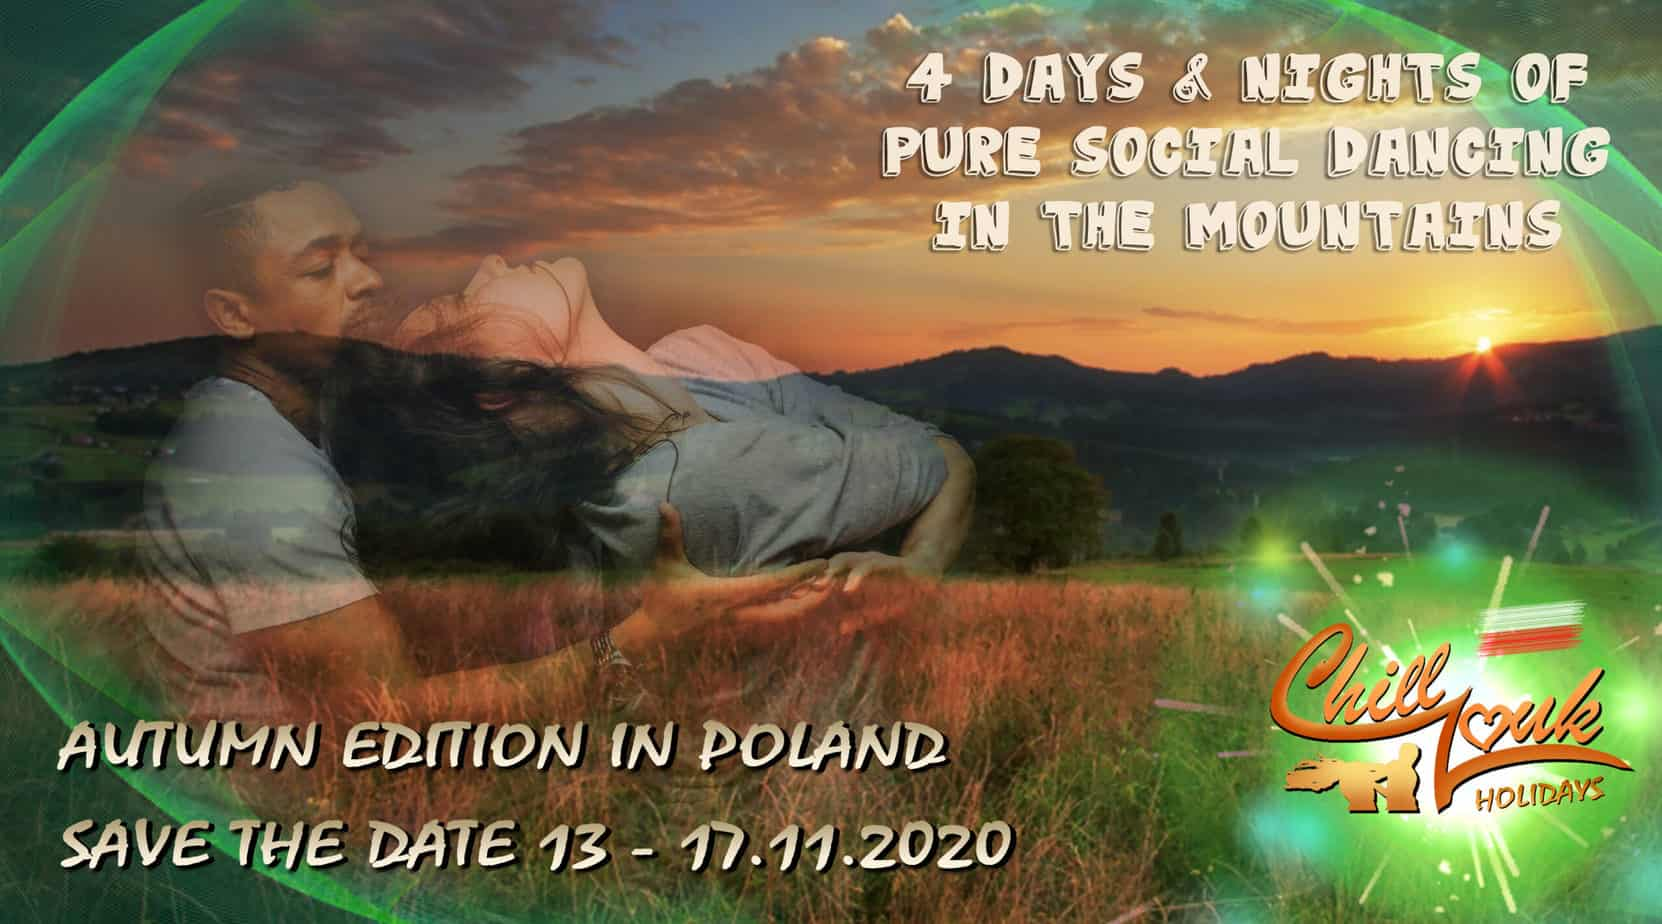 13-17 November 2020 - 3rd Autumn Edition in Poland